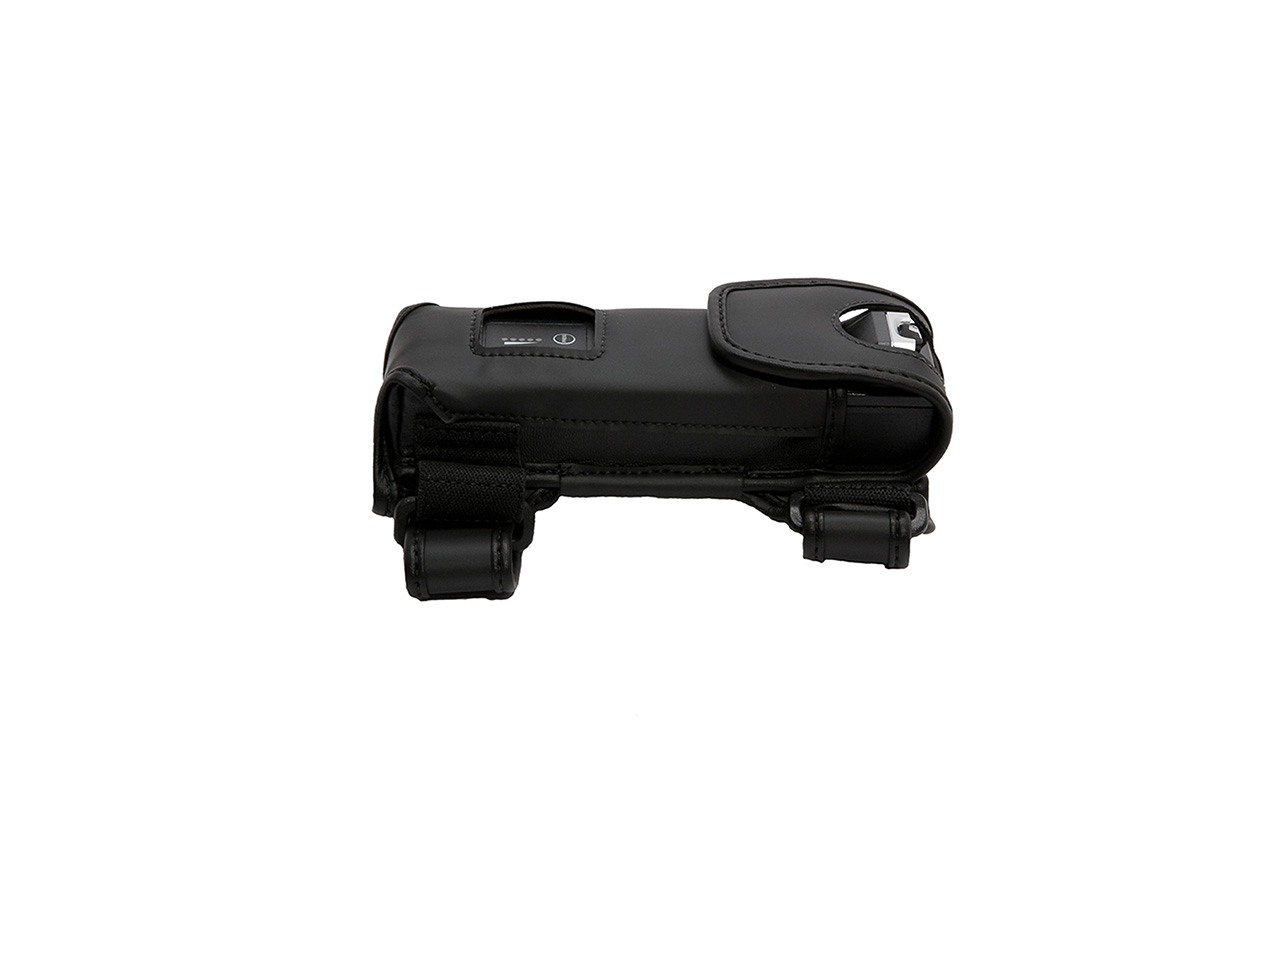 CE200B-Handheld-400X-Series-Extended-Life-Battery-Wrist-Case-4.jpg